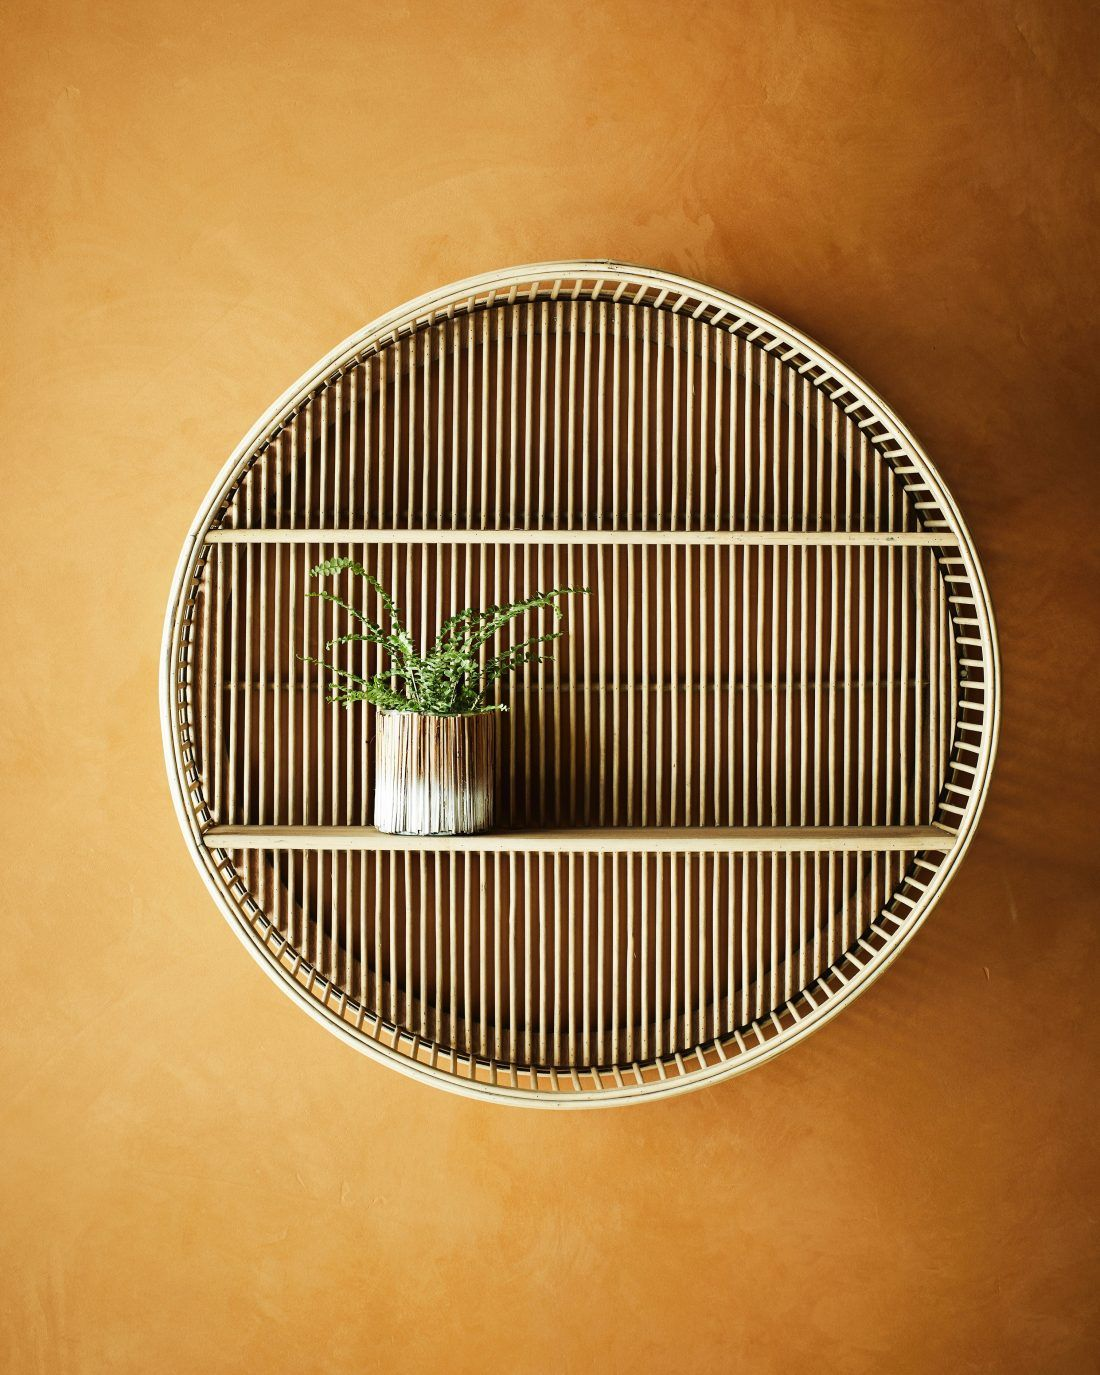 The Ibbi Saigon Bamboo Round Shelf The Perfect Storage Solution For Bathrooms Bedrooms Offices And Kitchens Ideal For Spices Books Shampoos Or Just Prett